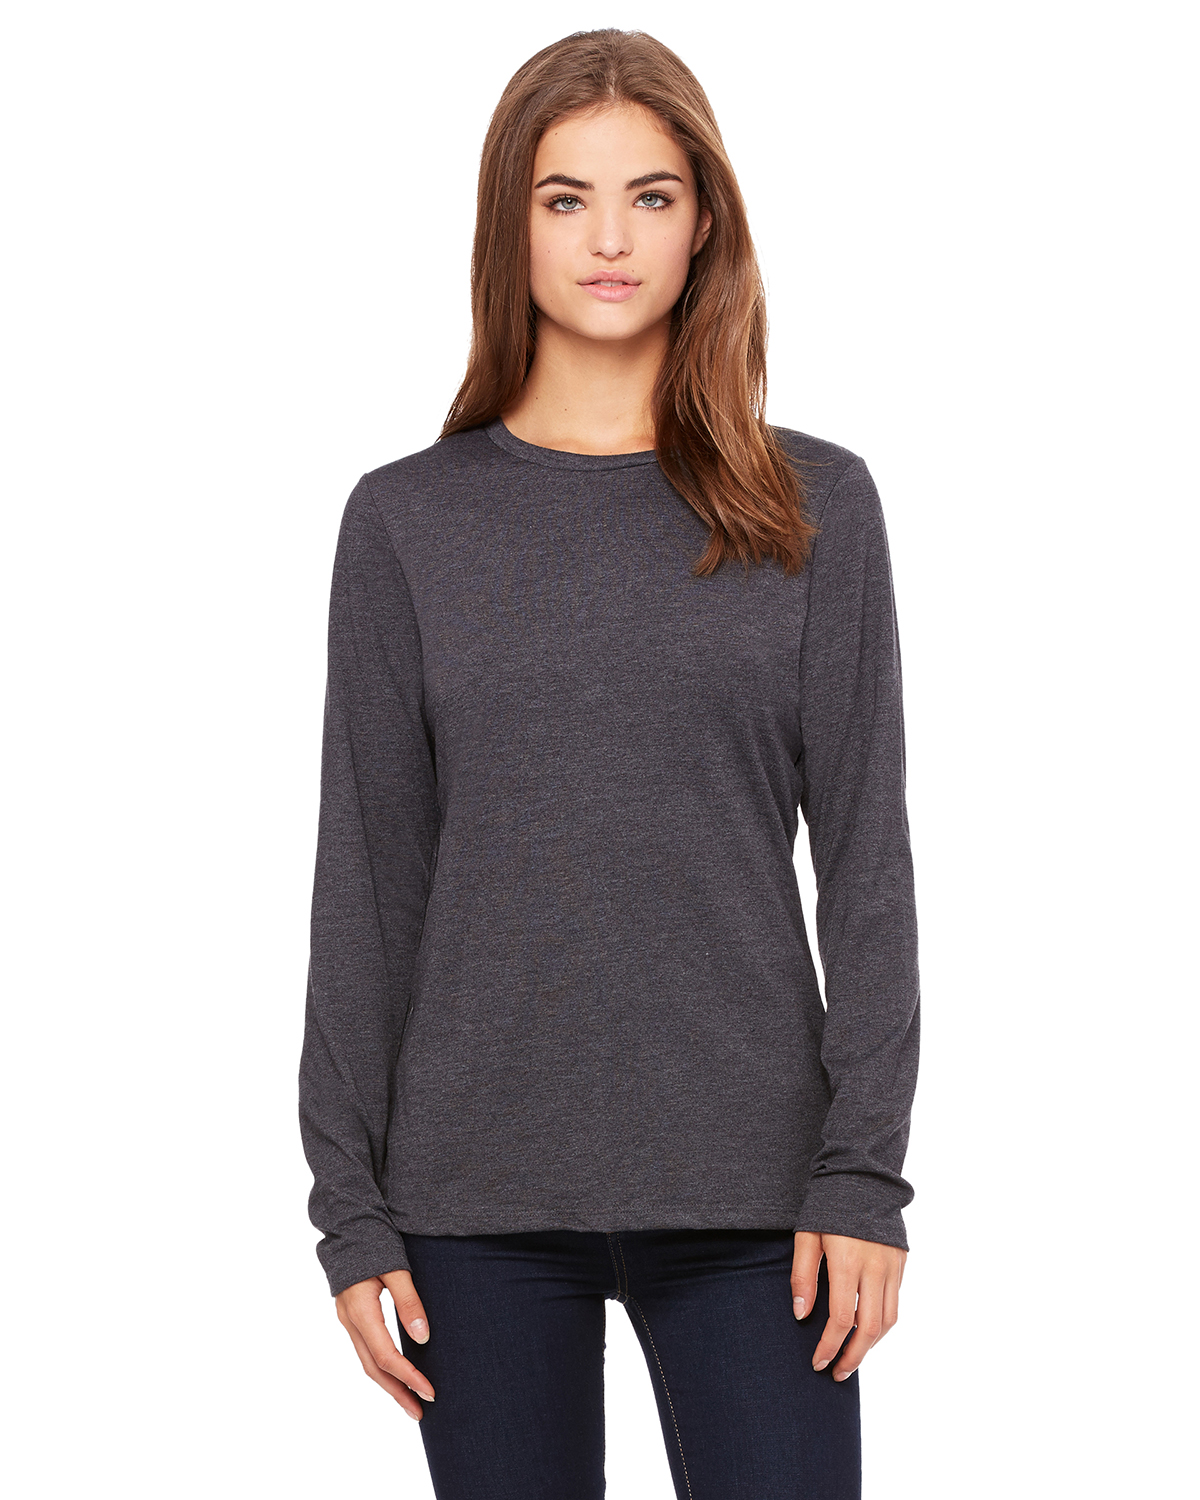 Bella 6450- Missy Long Sleeve Crew Neck T-Shirt